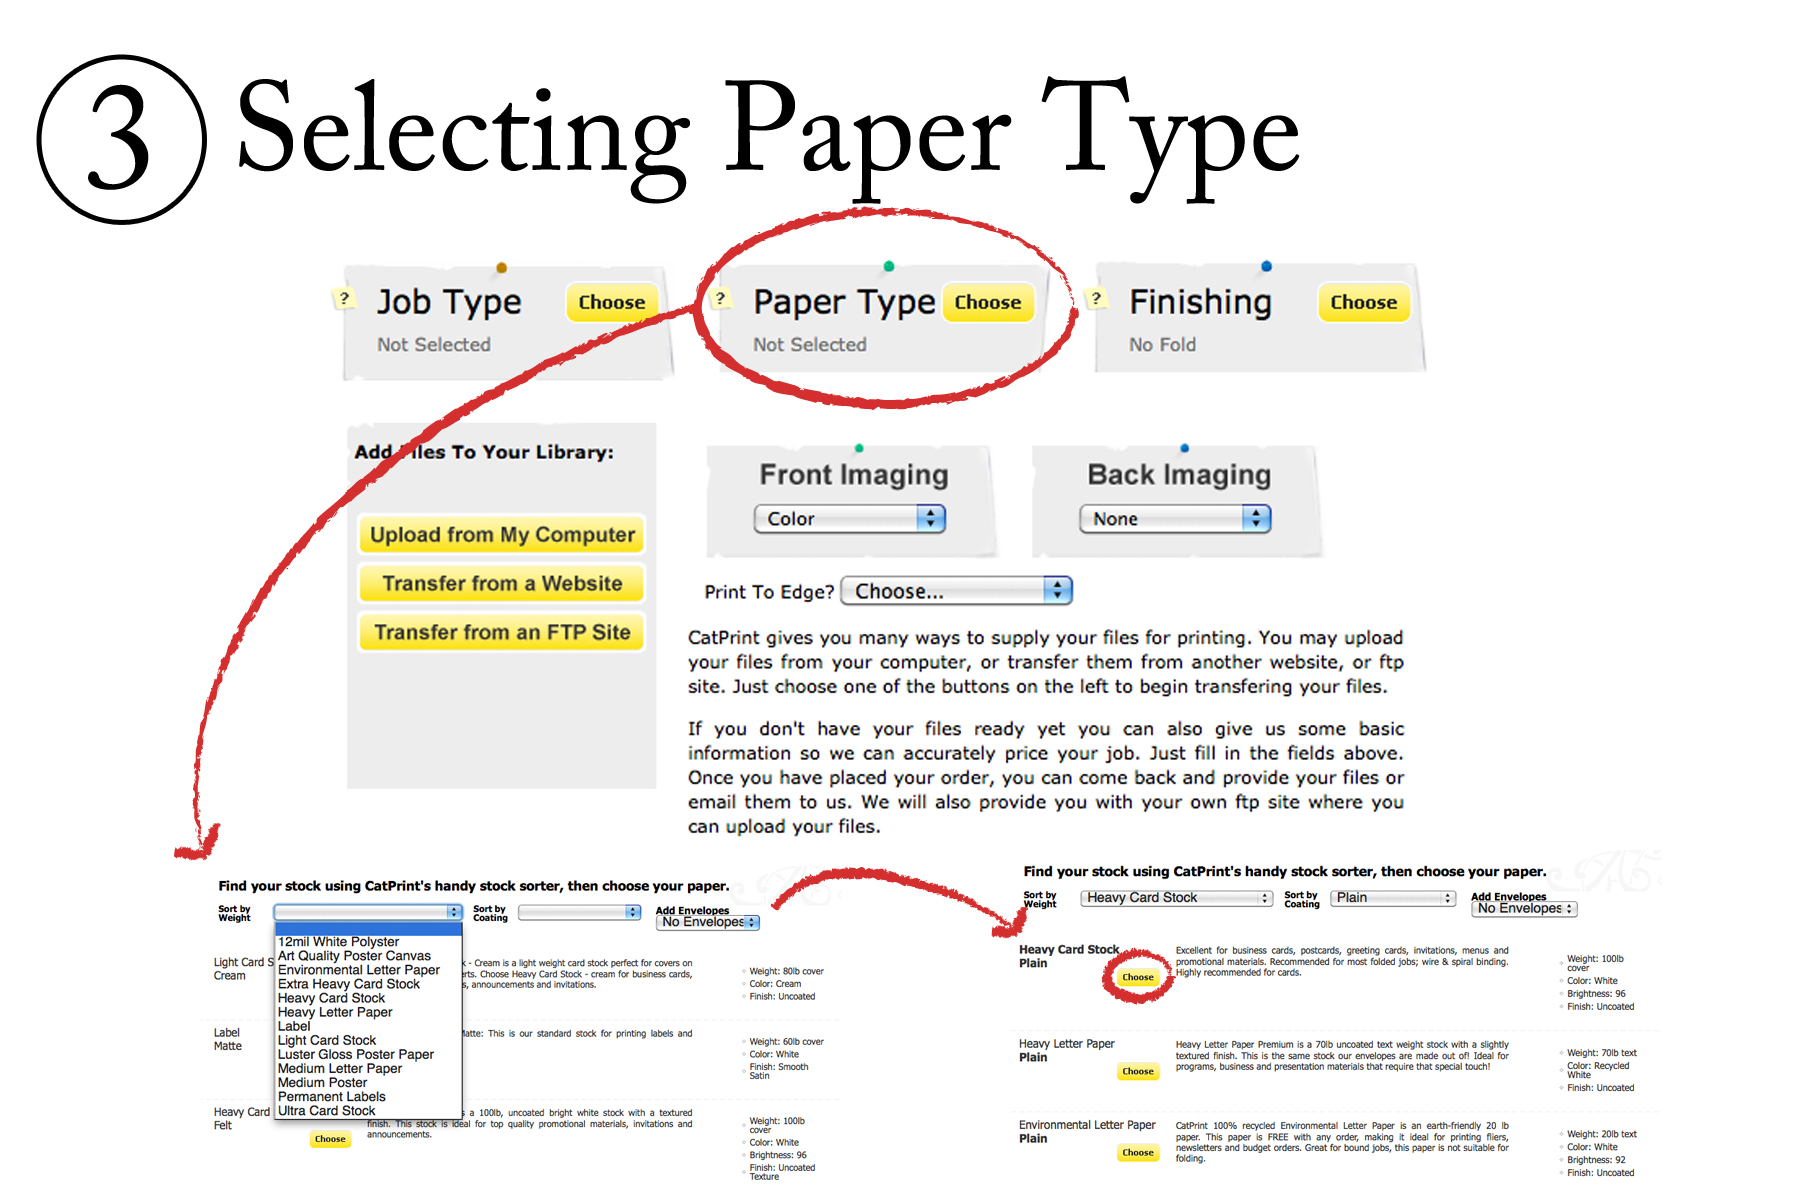 Selecting Paper Type